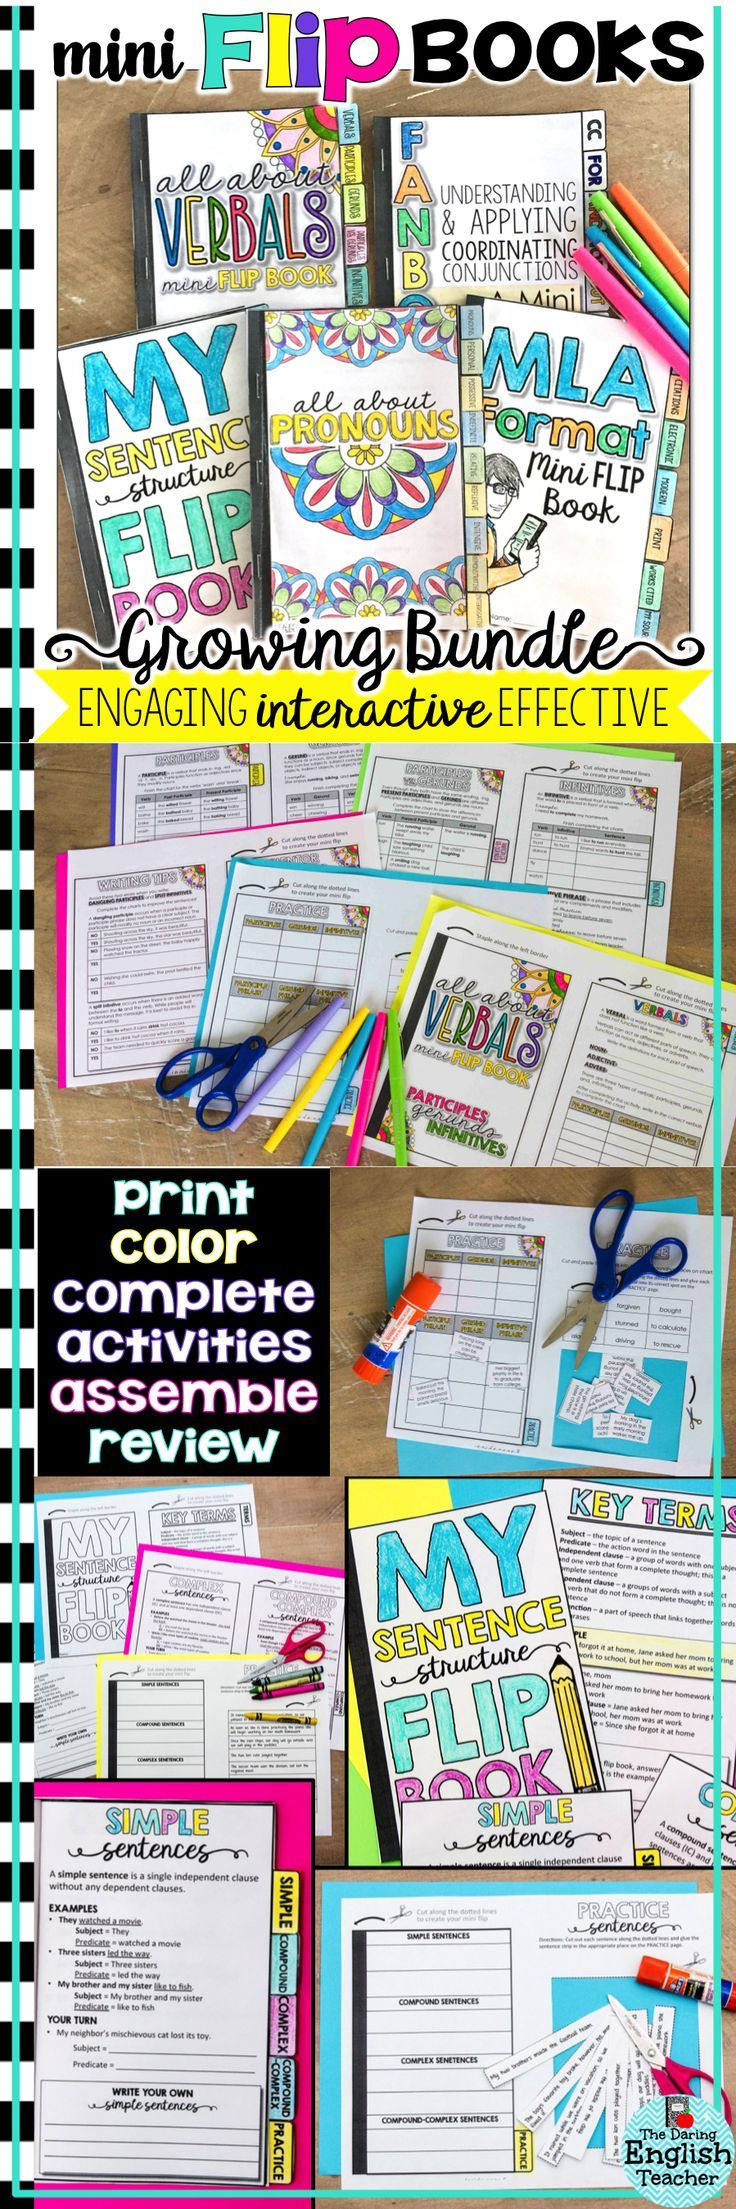 ELA mini flip books are an engaging and effective way to teach and review English language arts skills like grammar, parts of speech, writing, and more!